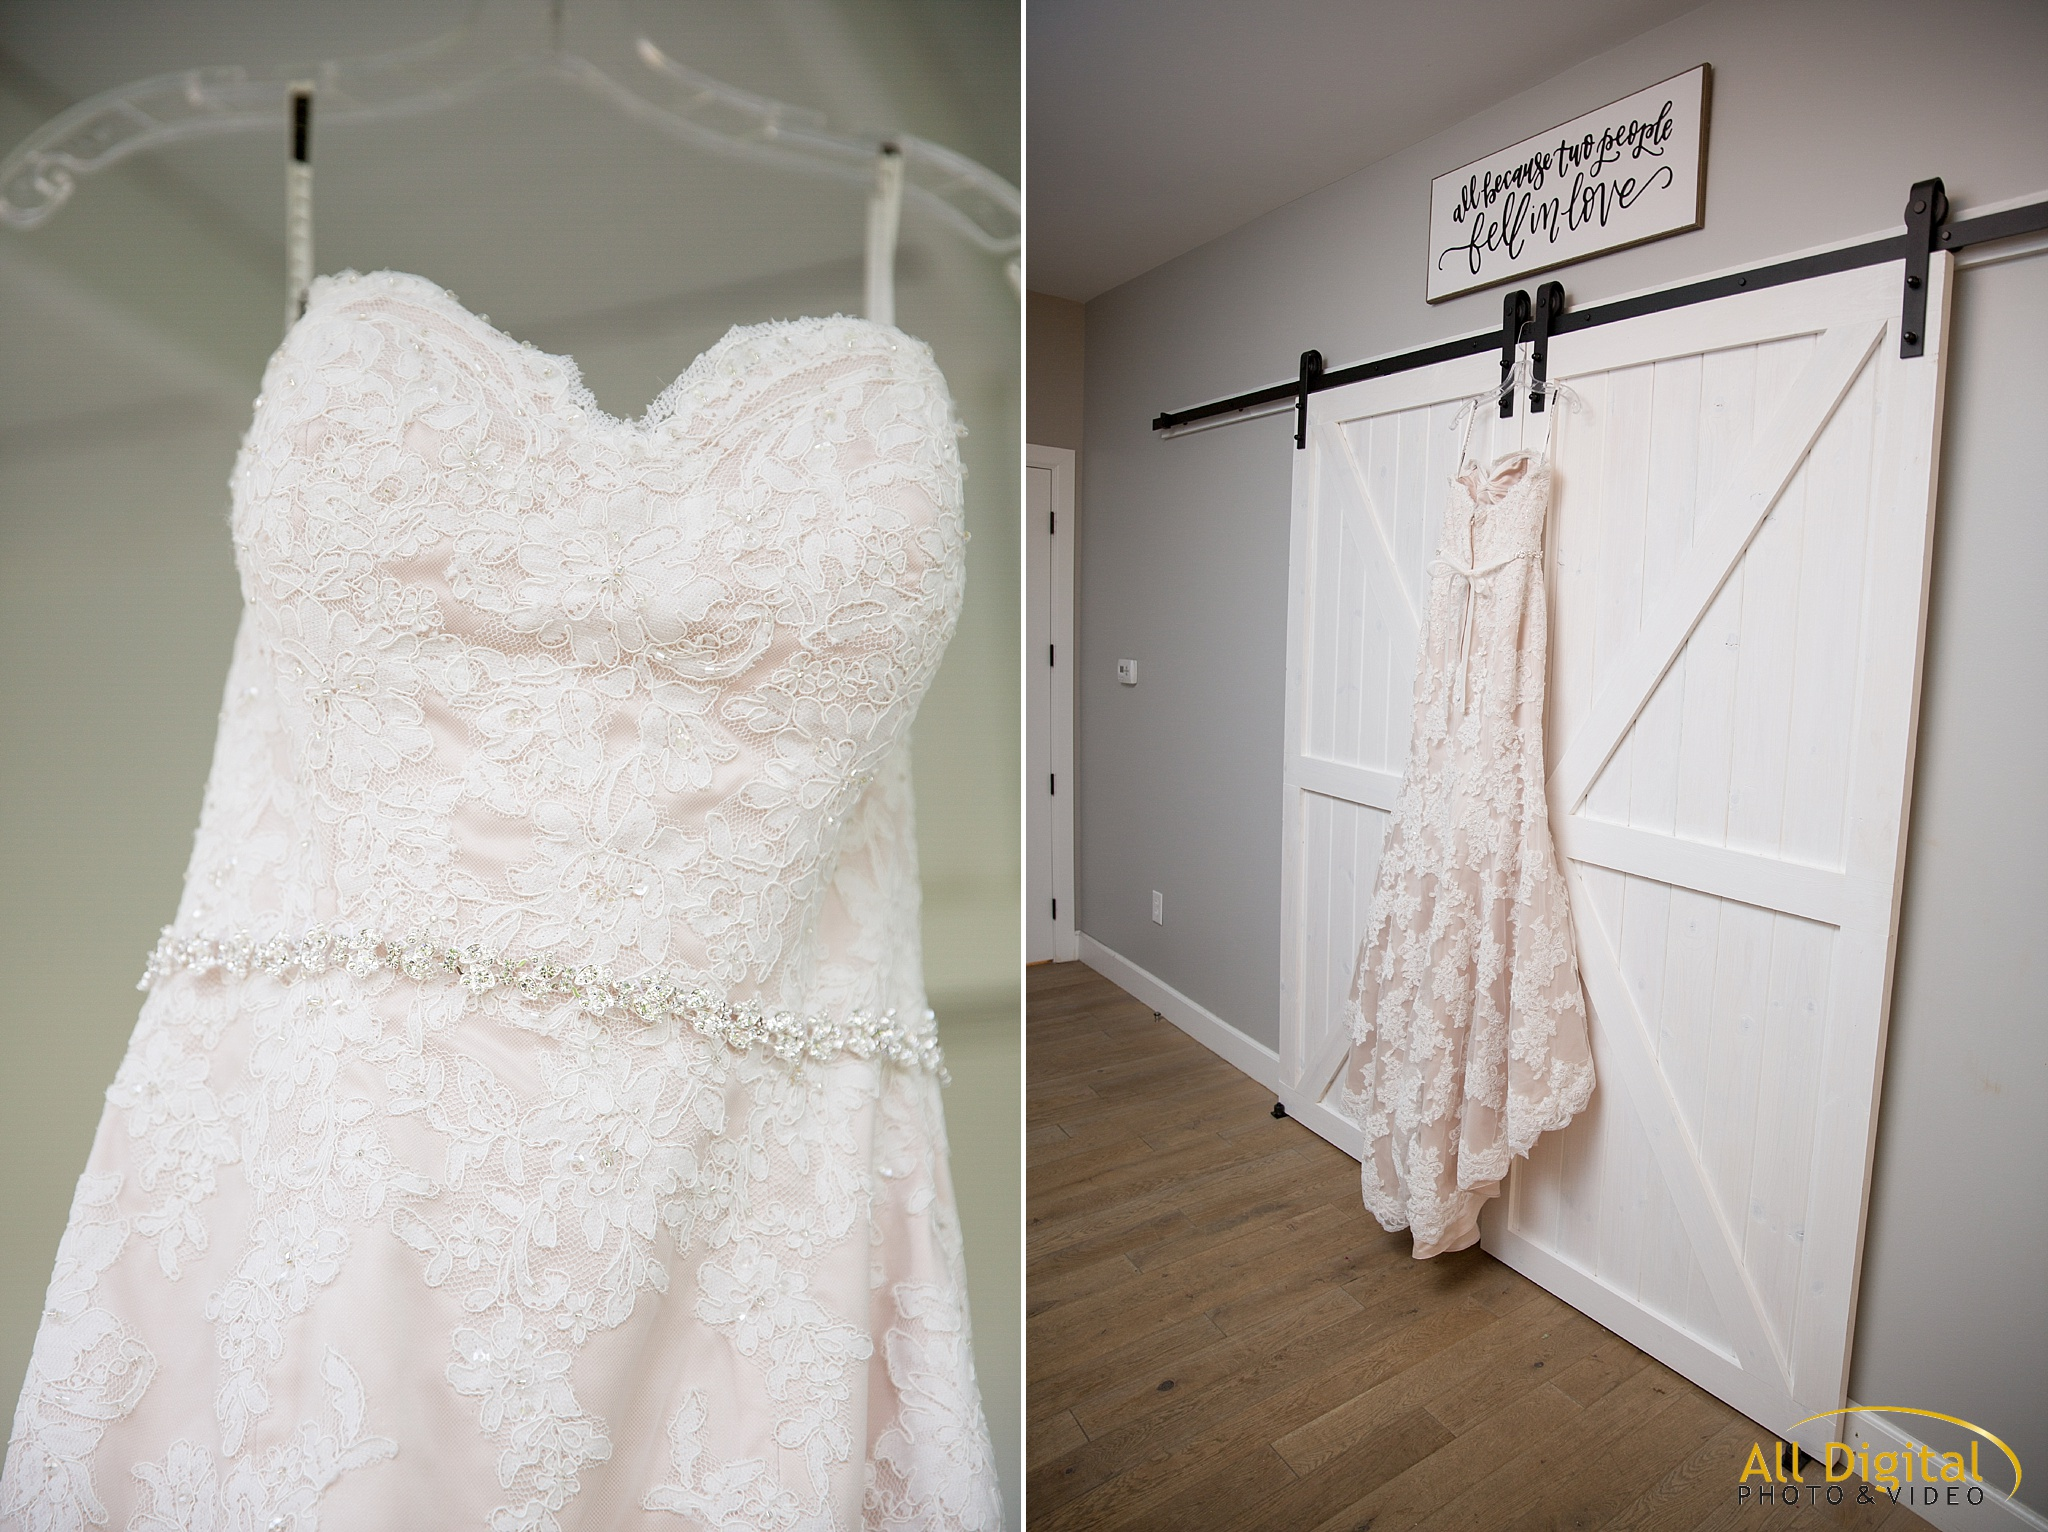 Tina's wedding dress hanging up in the dressing room at Raccoon Creek.